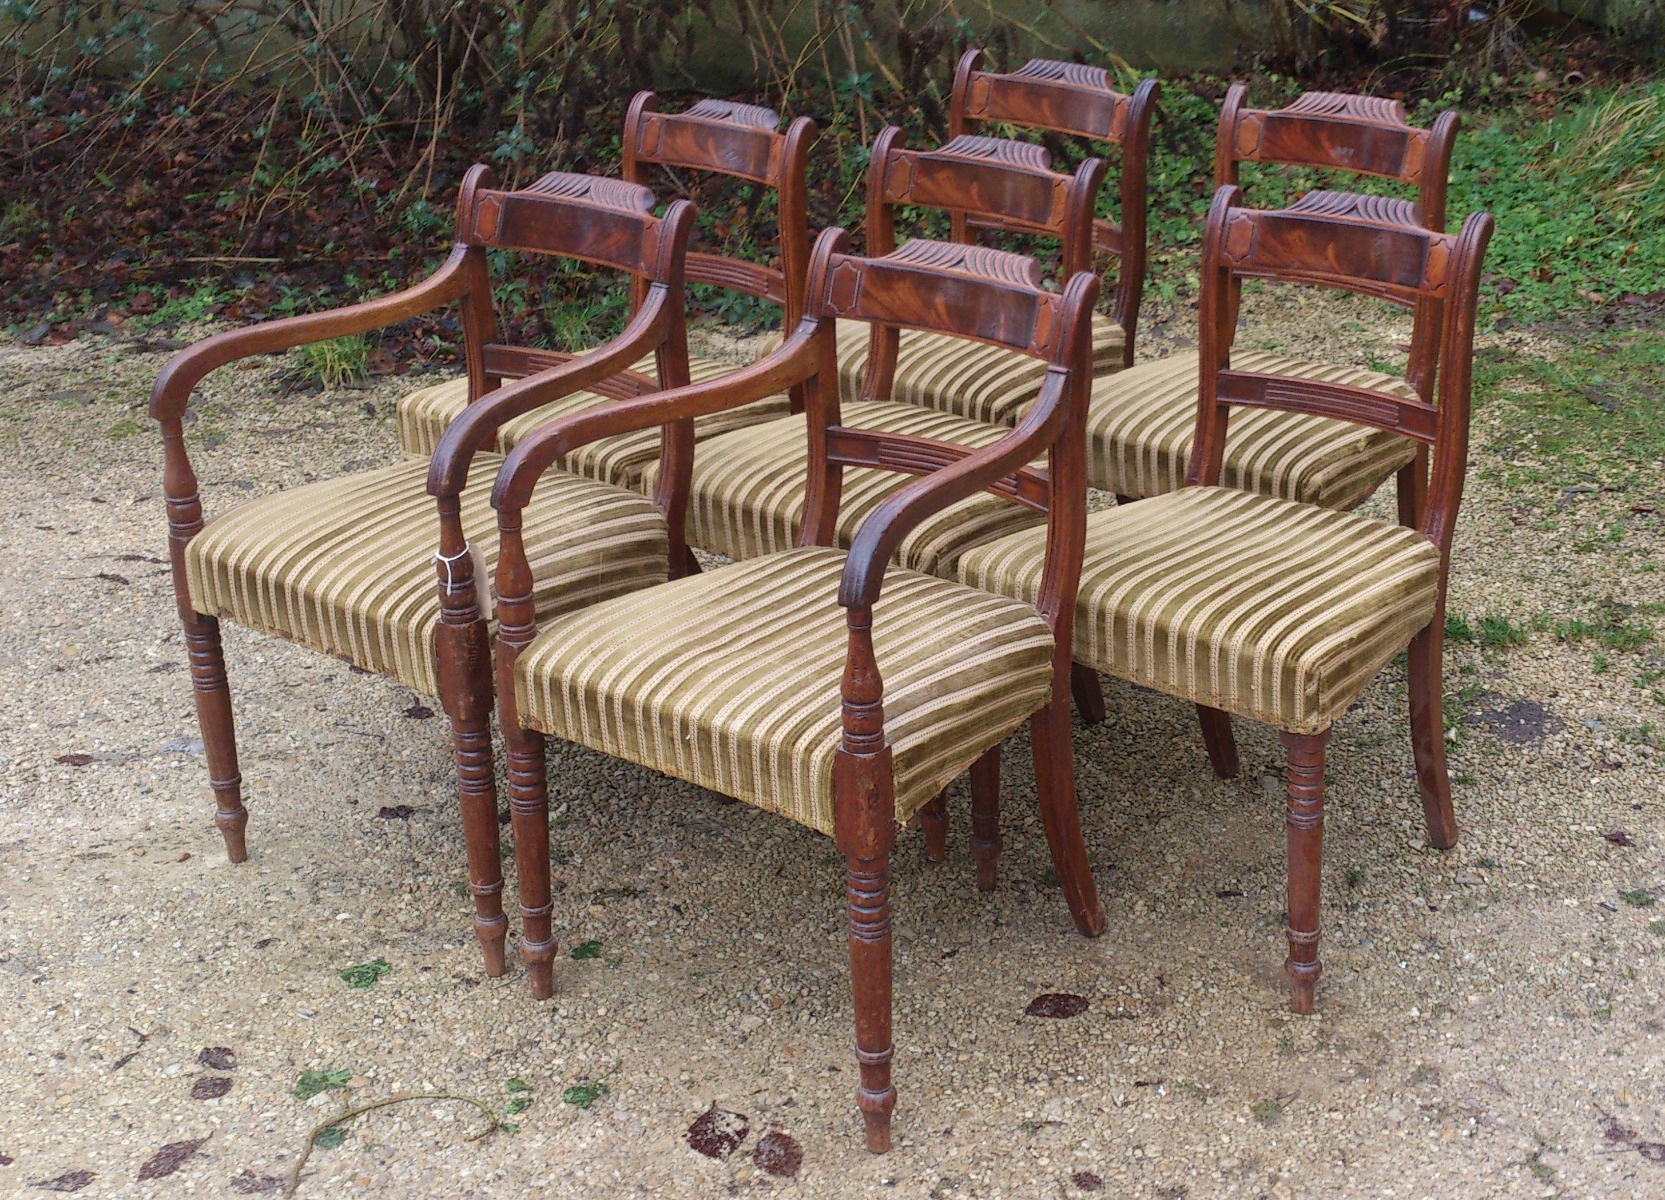 Antique regency dining chairs -  Set Of 8 Regency Mahogany Antique Dining Chairs2 Jpg